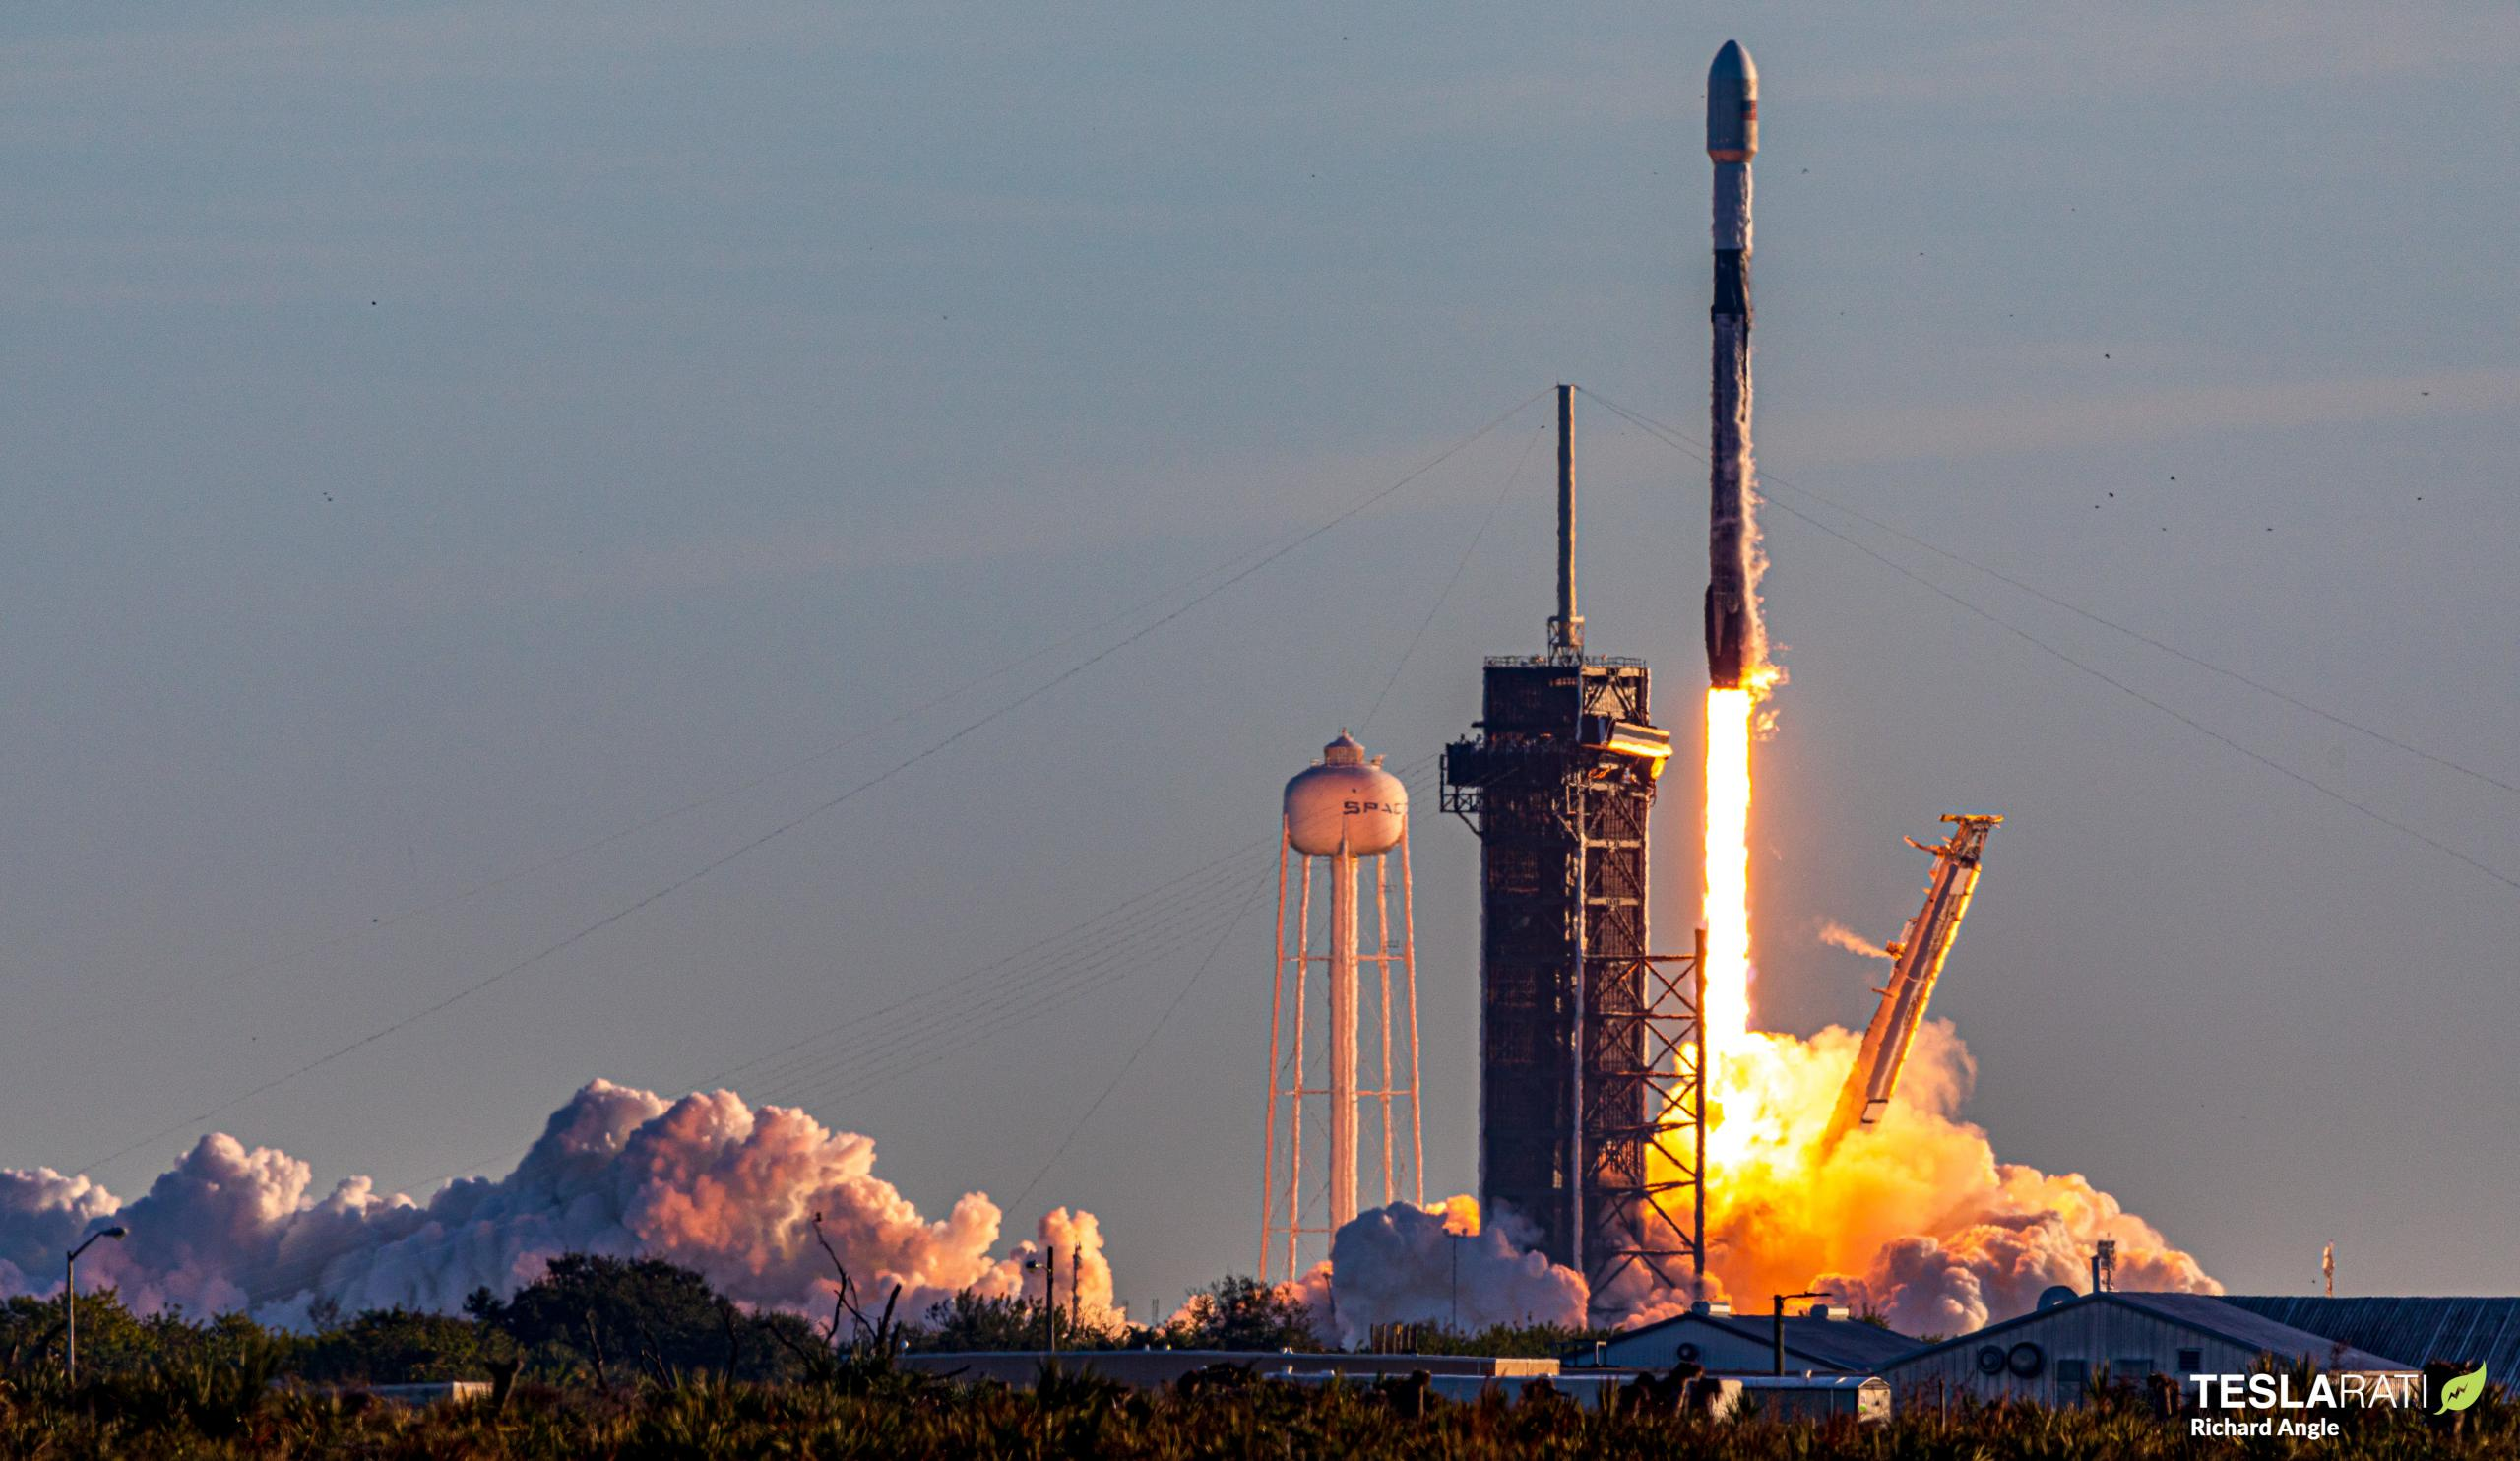 Starlink-16 Falcon 9 B1051 39A 012021 (Richard Angle) launch 3 crop (c)